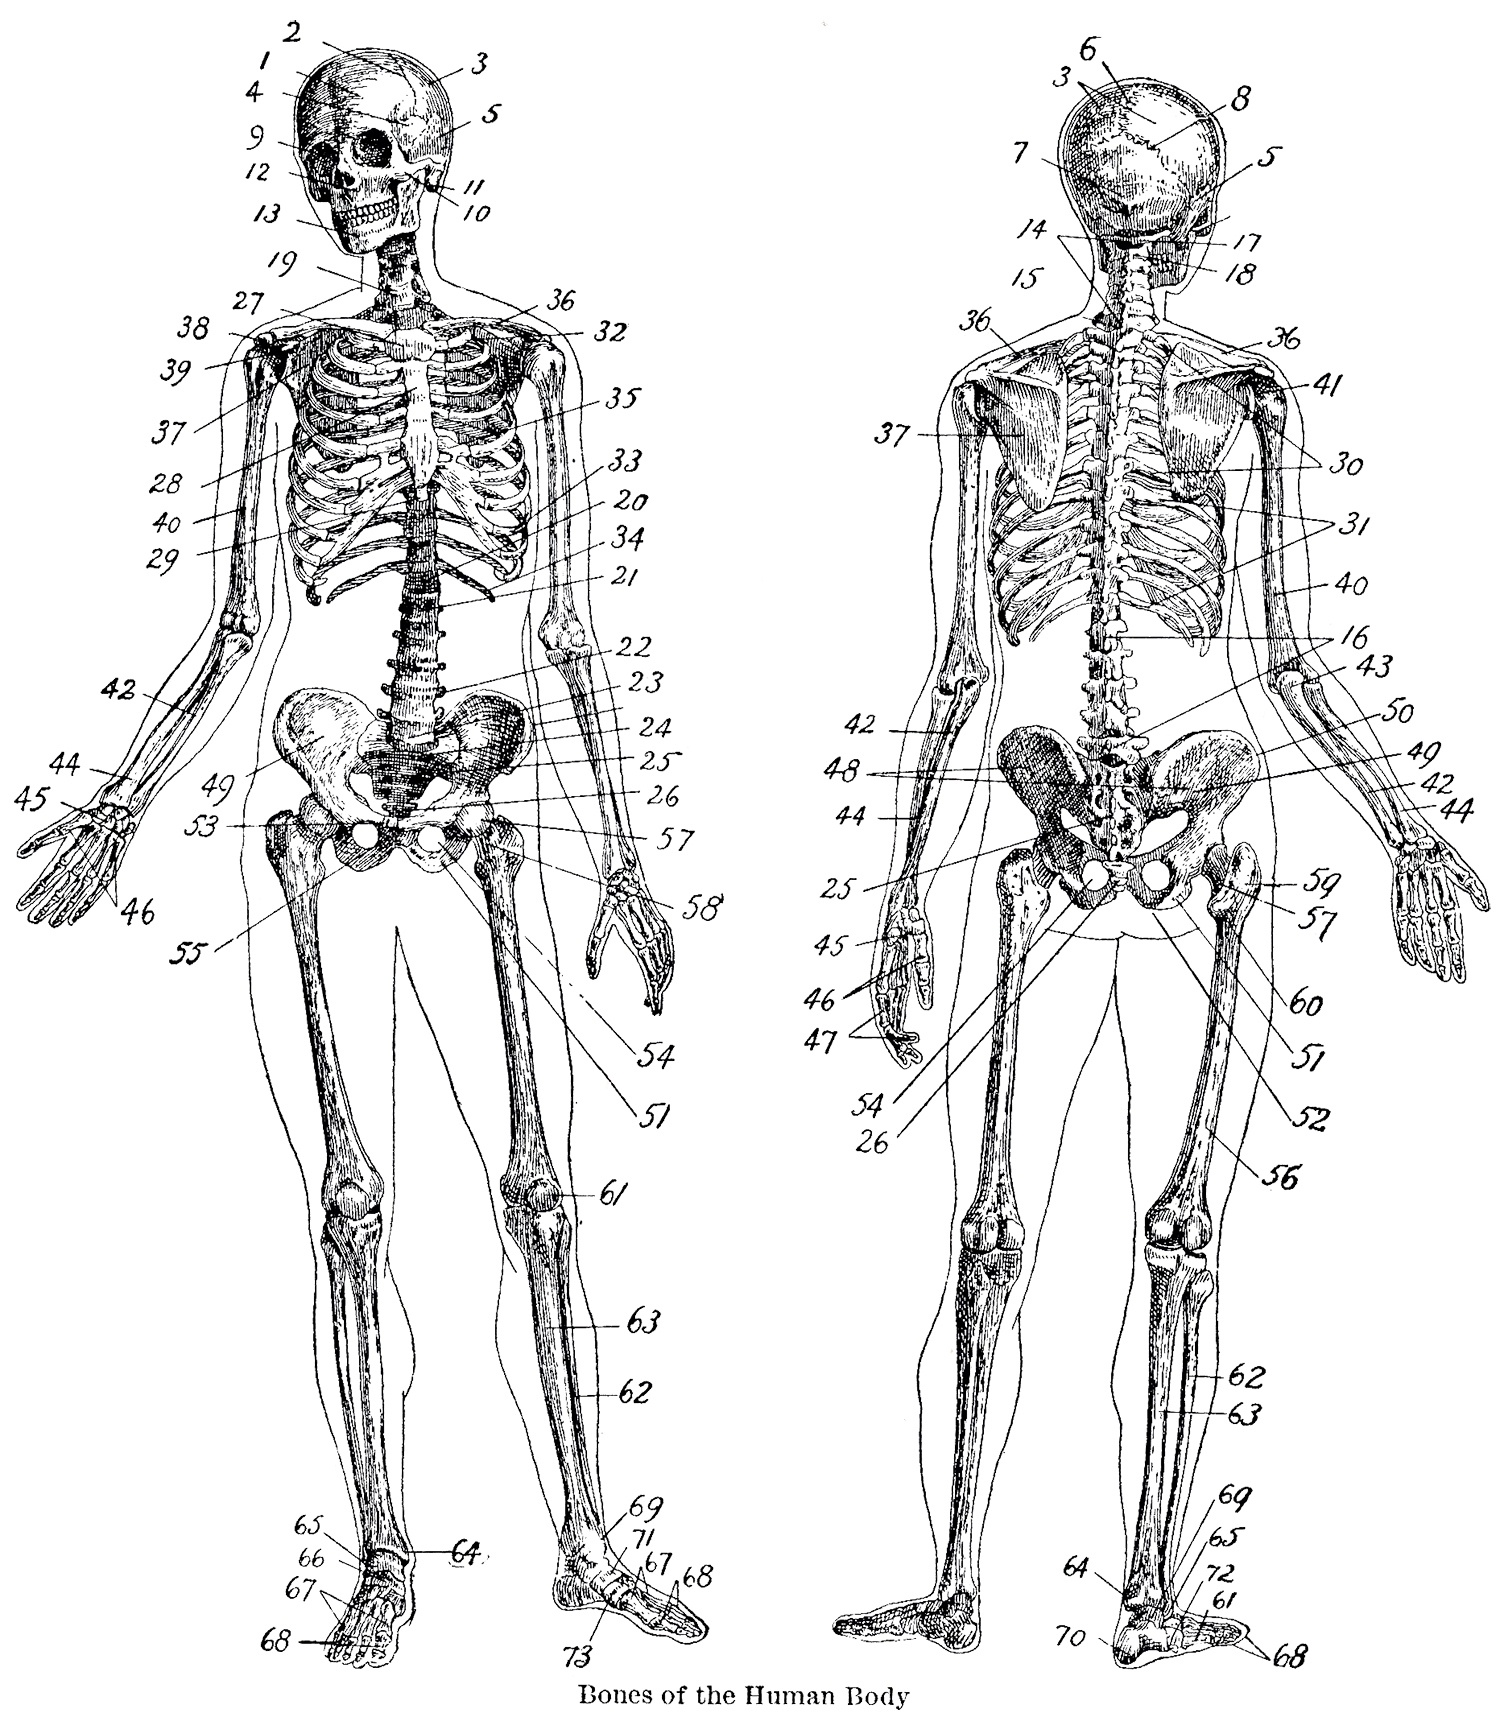 Vintage Anatomy Skeleton Images - The Graphics Fairy - Free Printable Anatomy Pictures